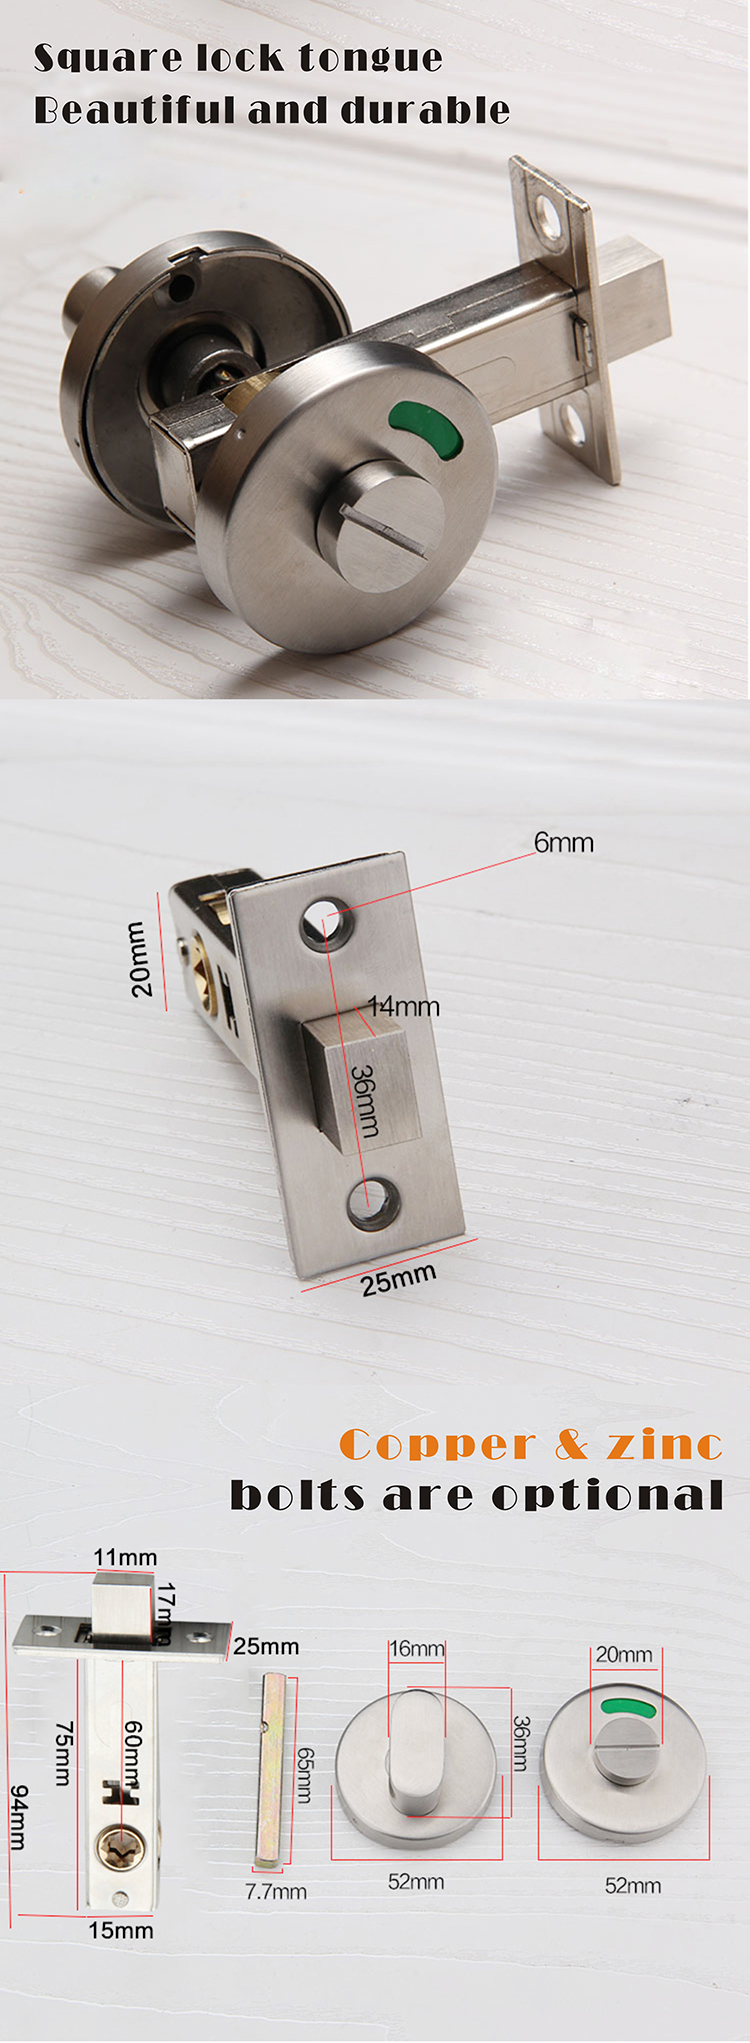 Top quality stainless steel partition toilet cubicles door lock